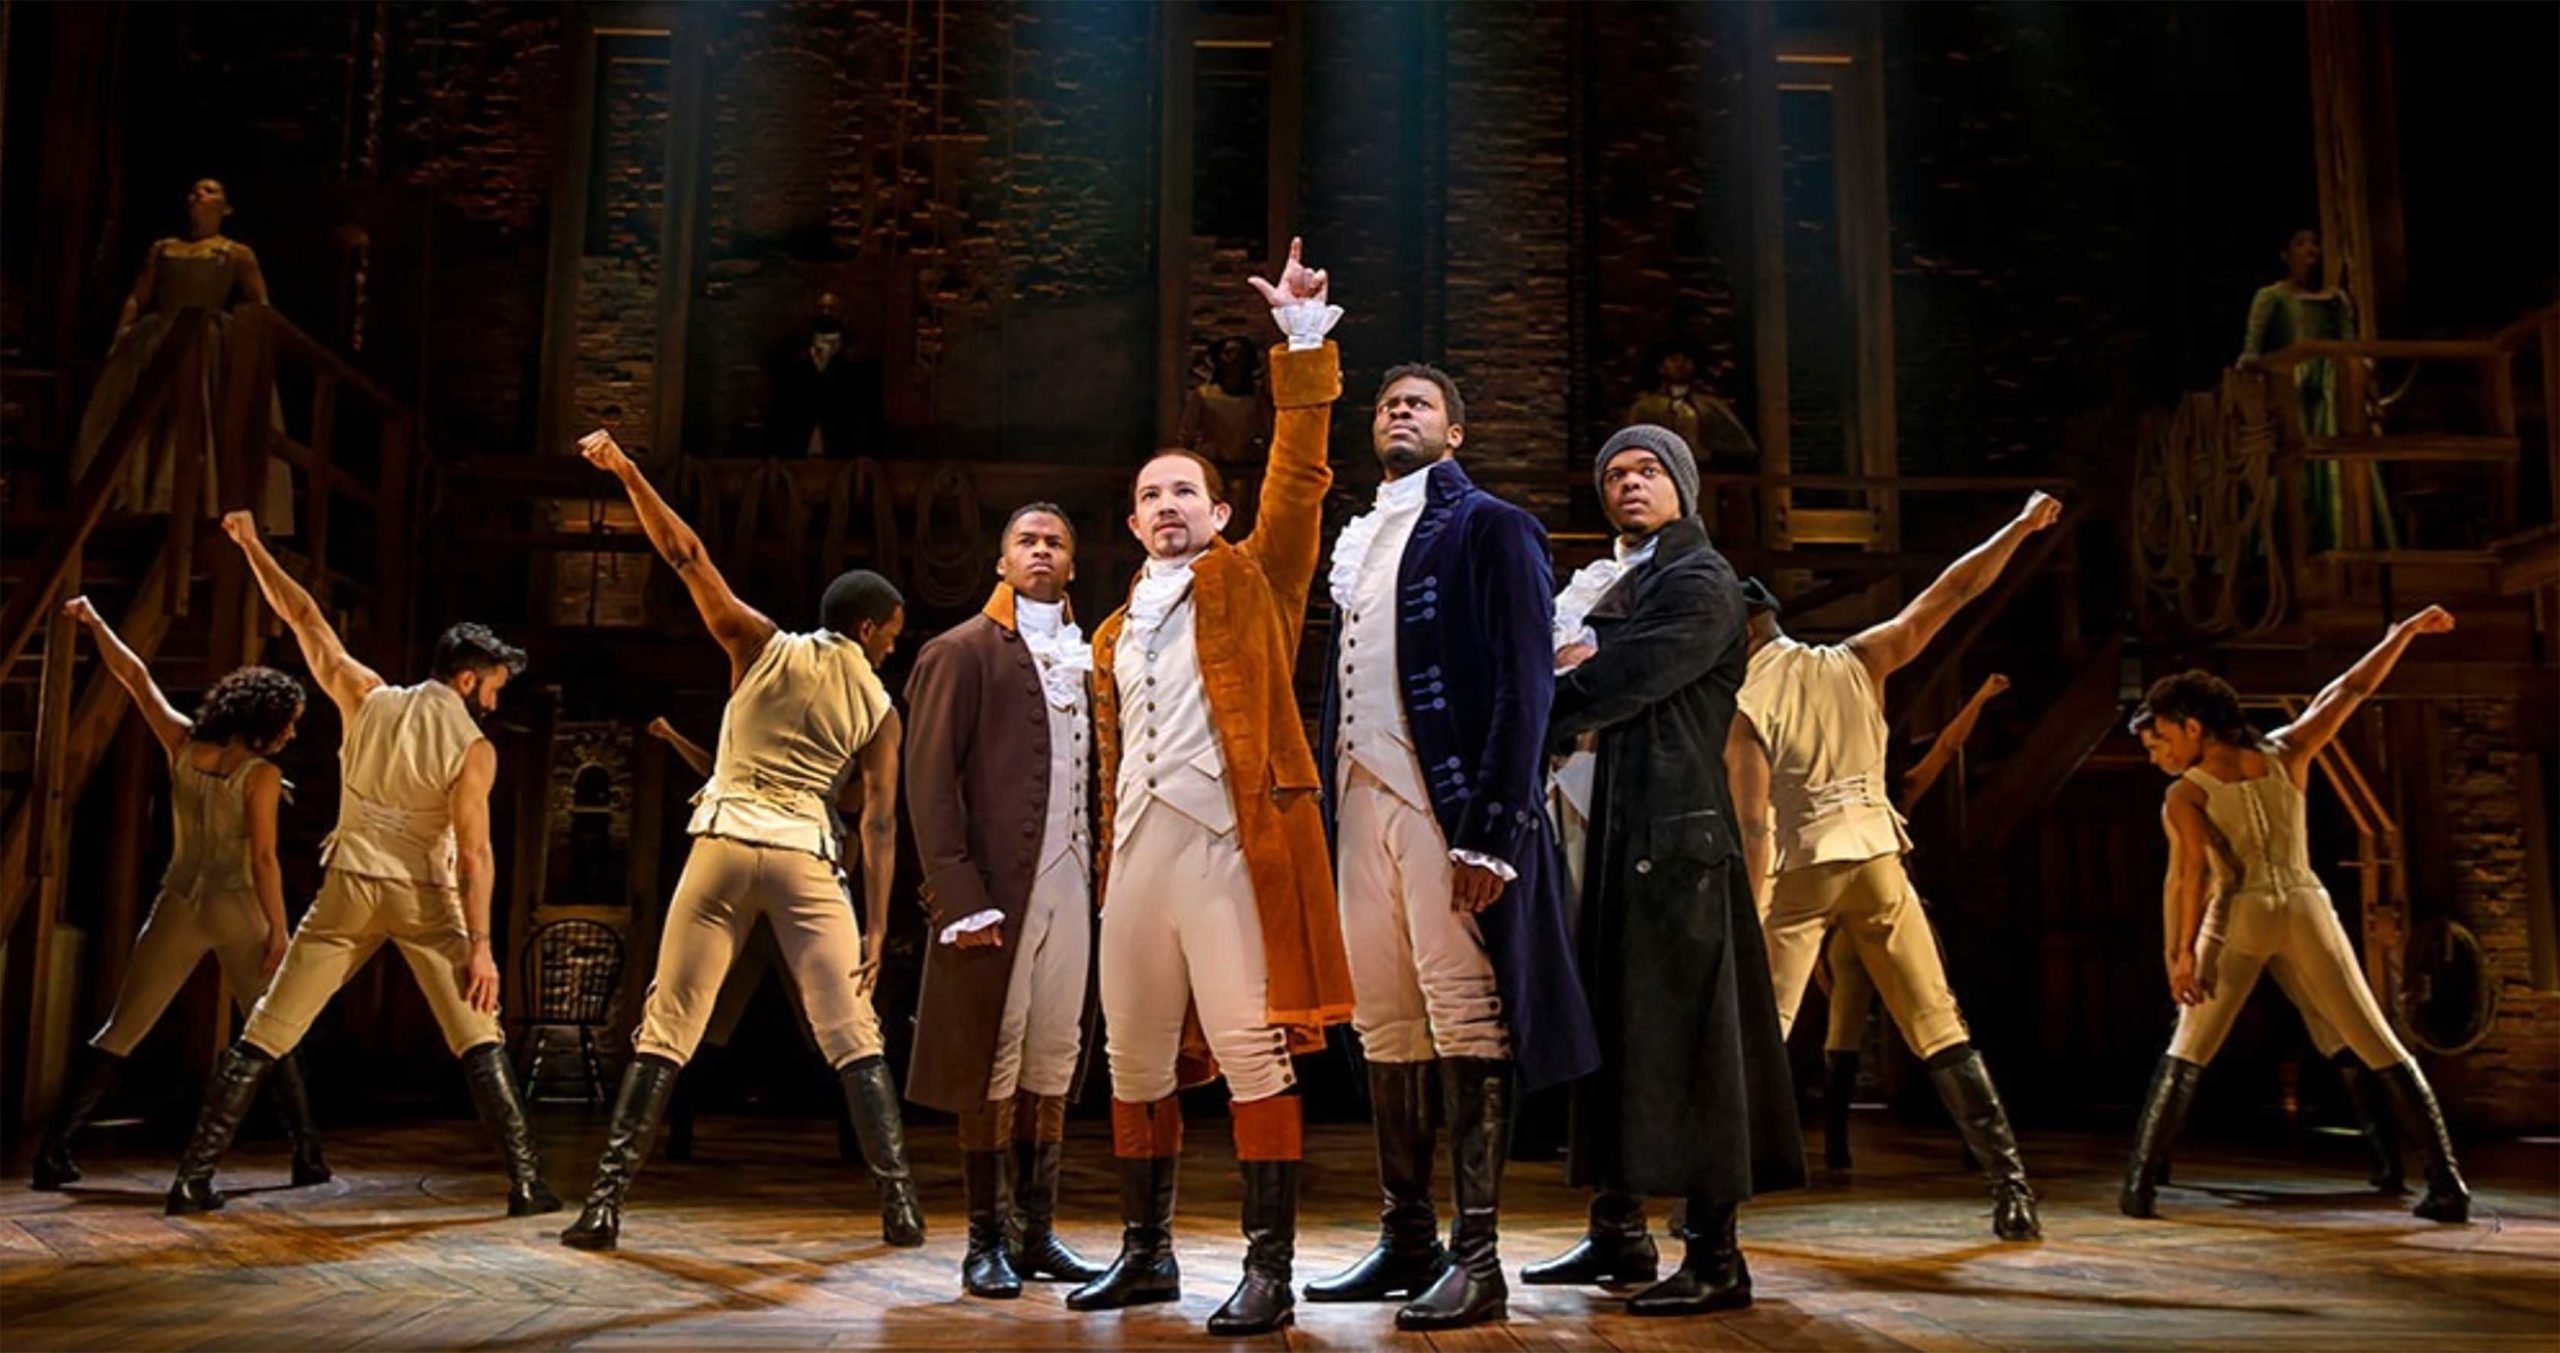 hamilton disney plus - photo #26